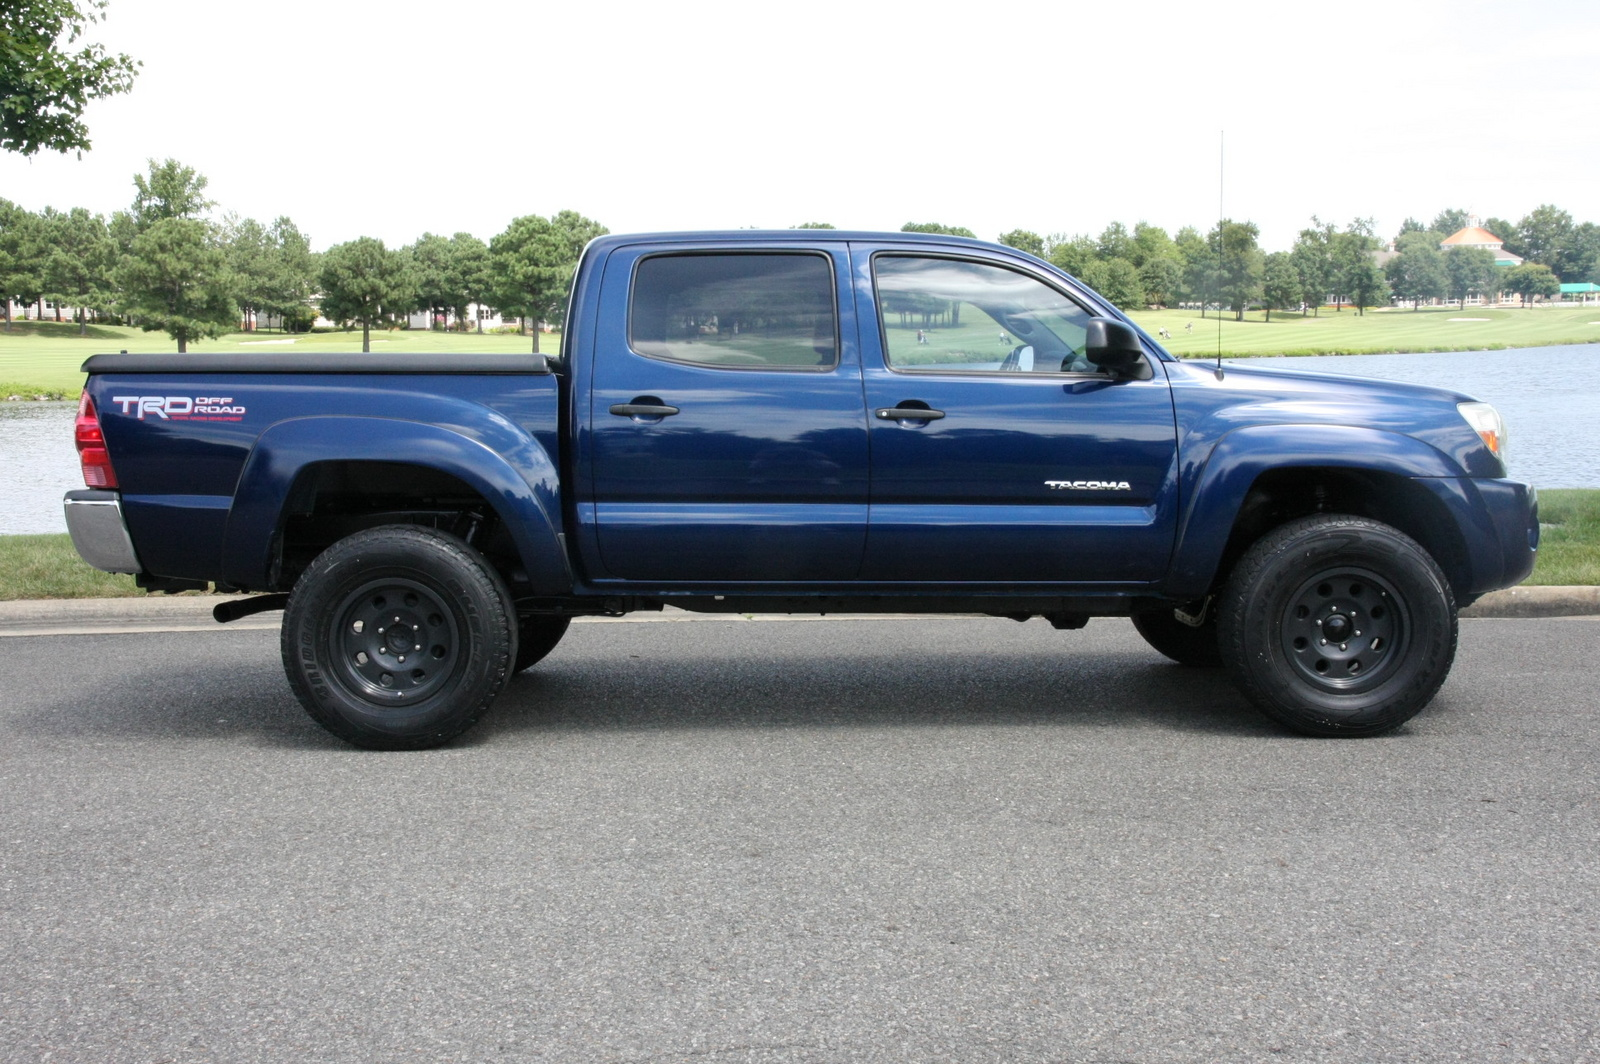 Picture of 2006 Toyota Tacoma V6 4dr Double Cab 4WD SB w/automatic ...